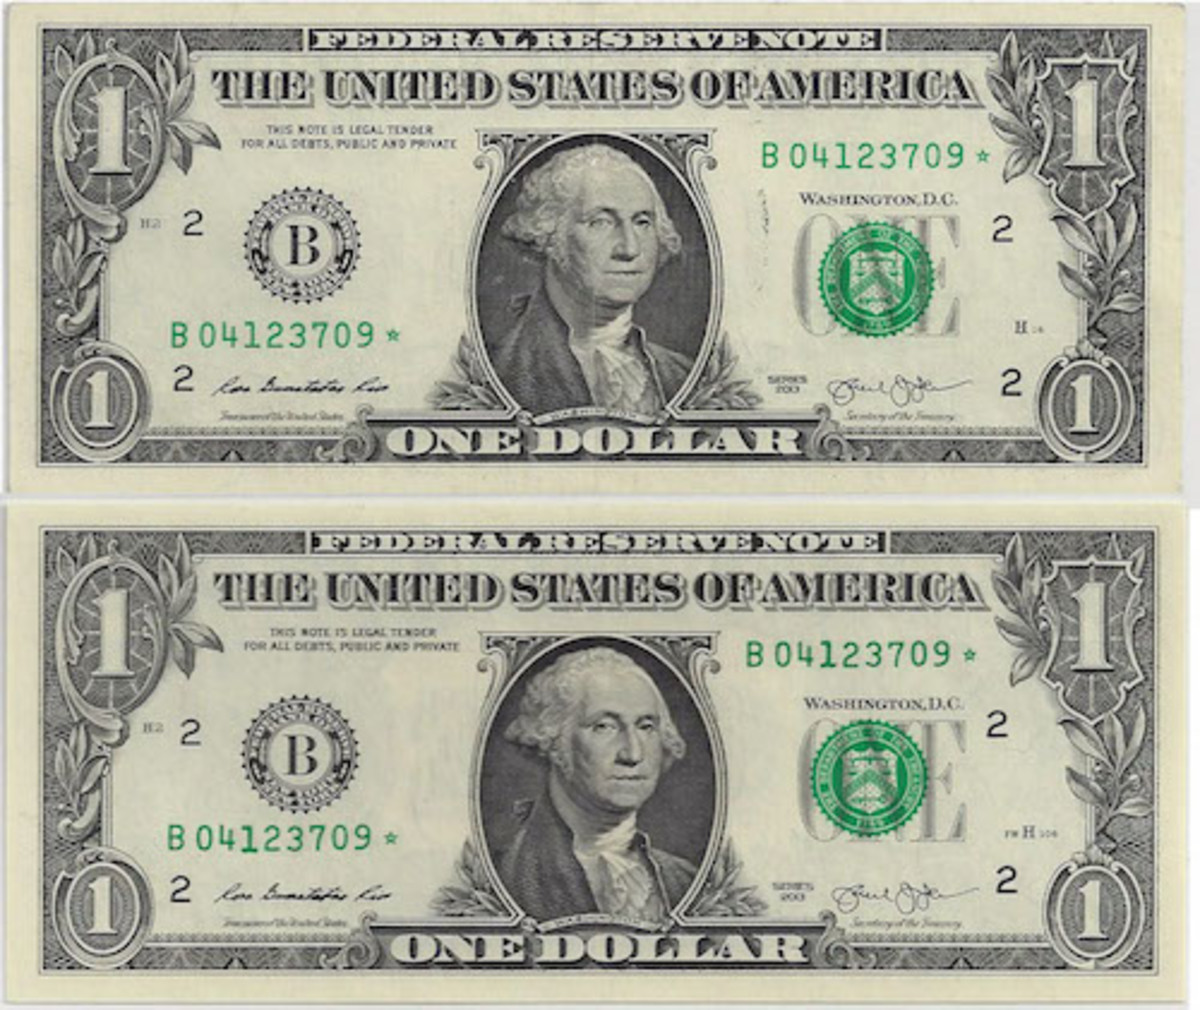 Craig of Las Vegas put together this matched pair of 2013 B* notes from the accidentally duplicated numbering runs printed respectively in Washington and Fort Worth. Notice the FW in front of the plate serial number on the lower note.